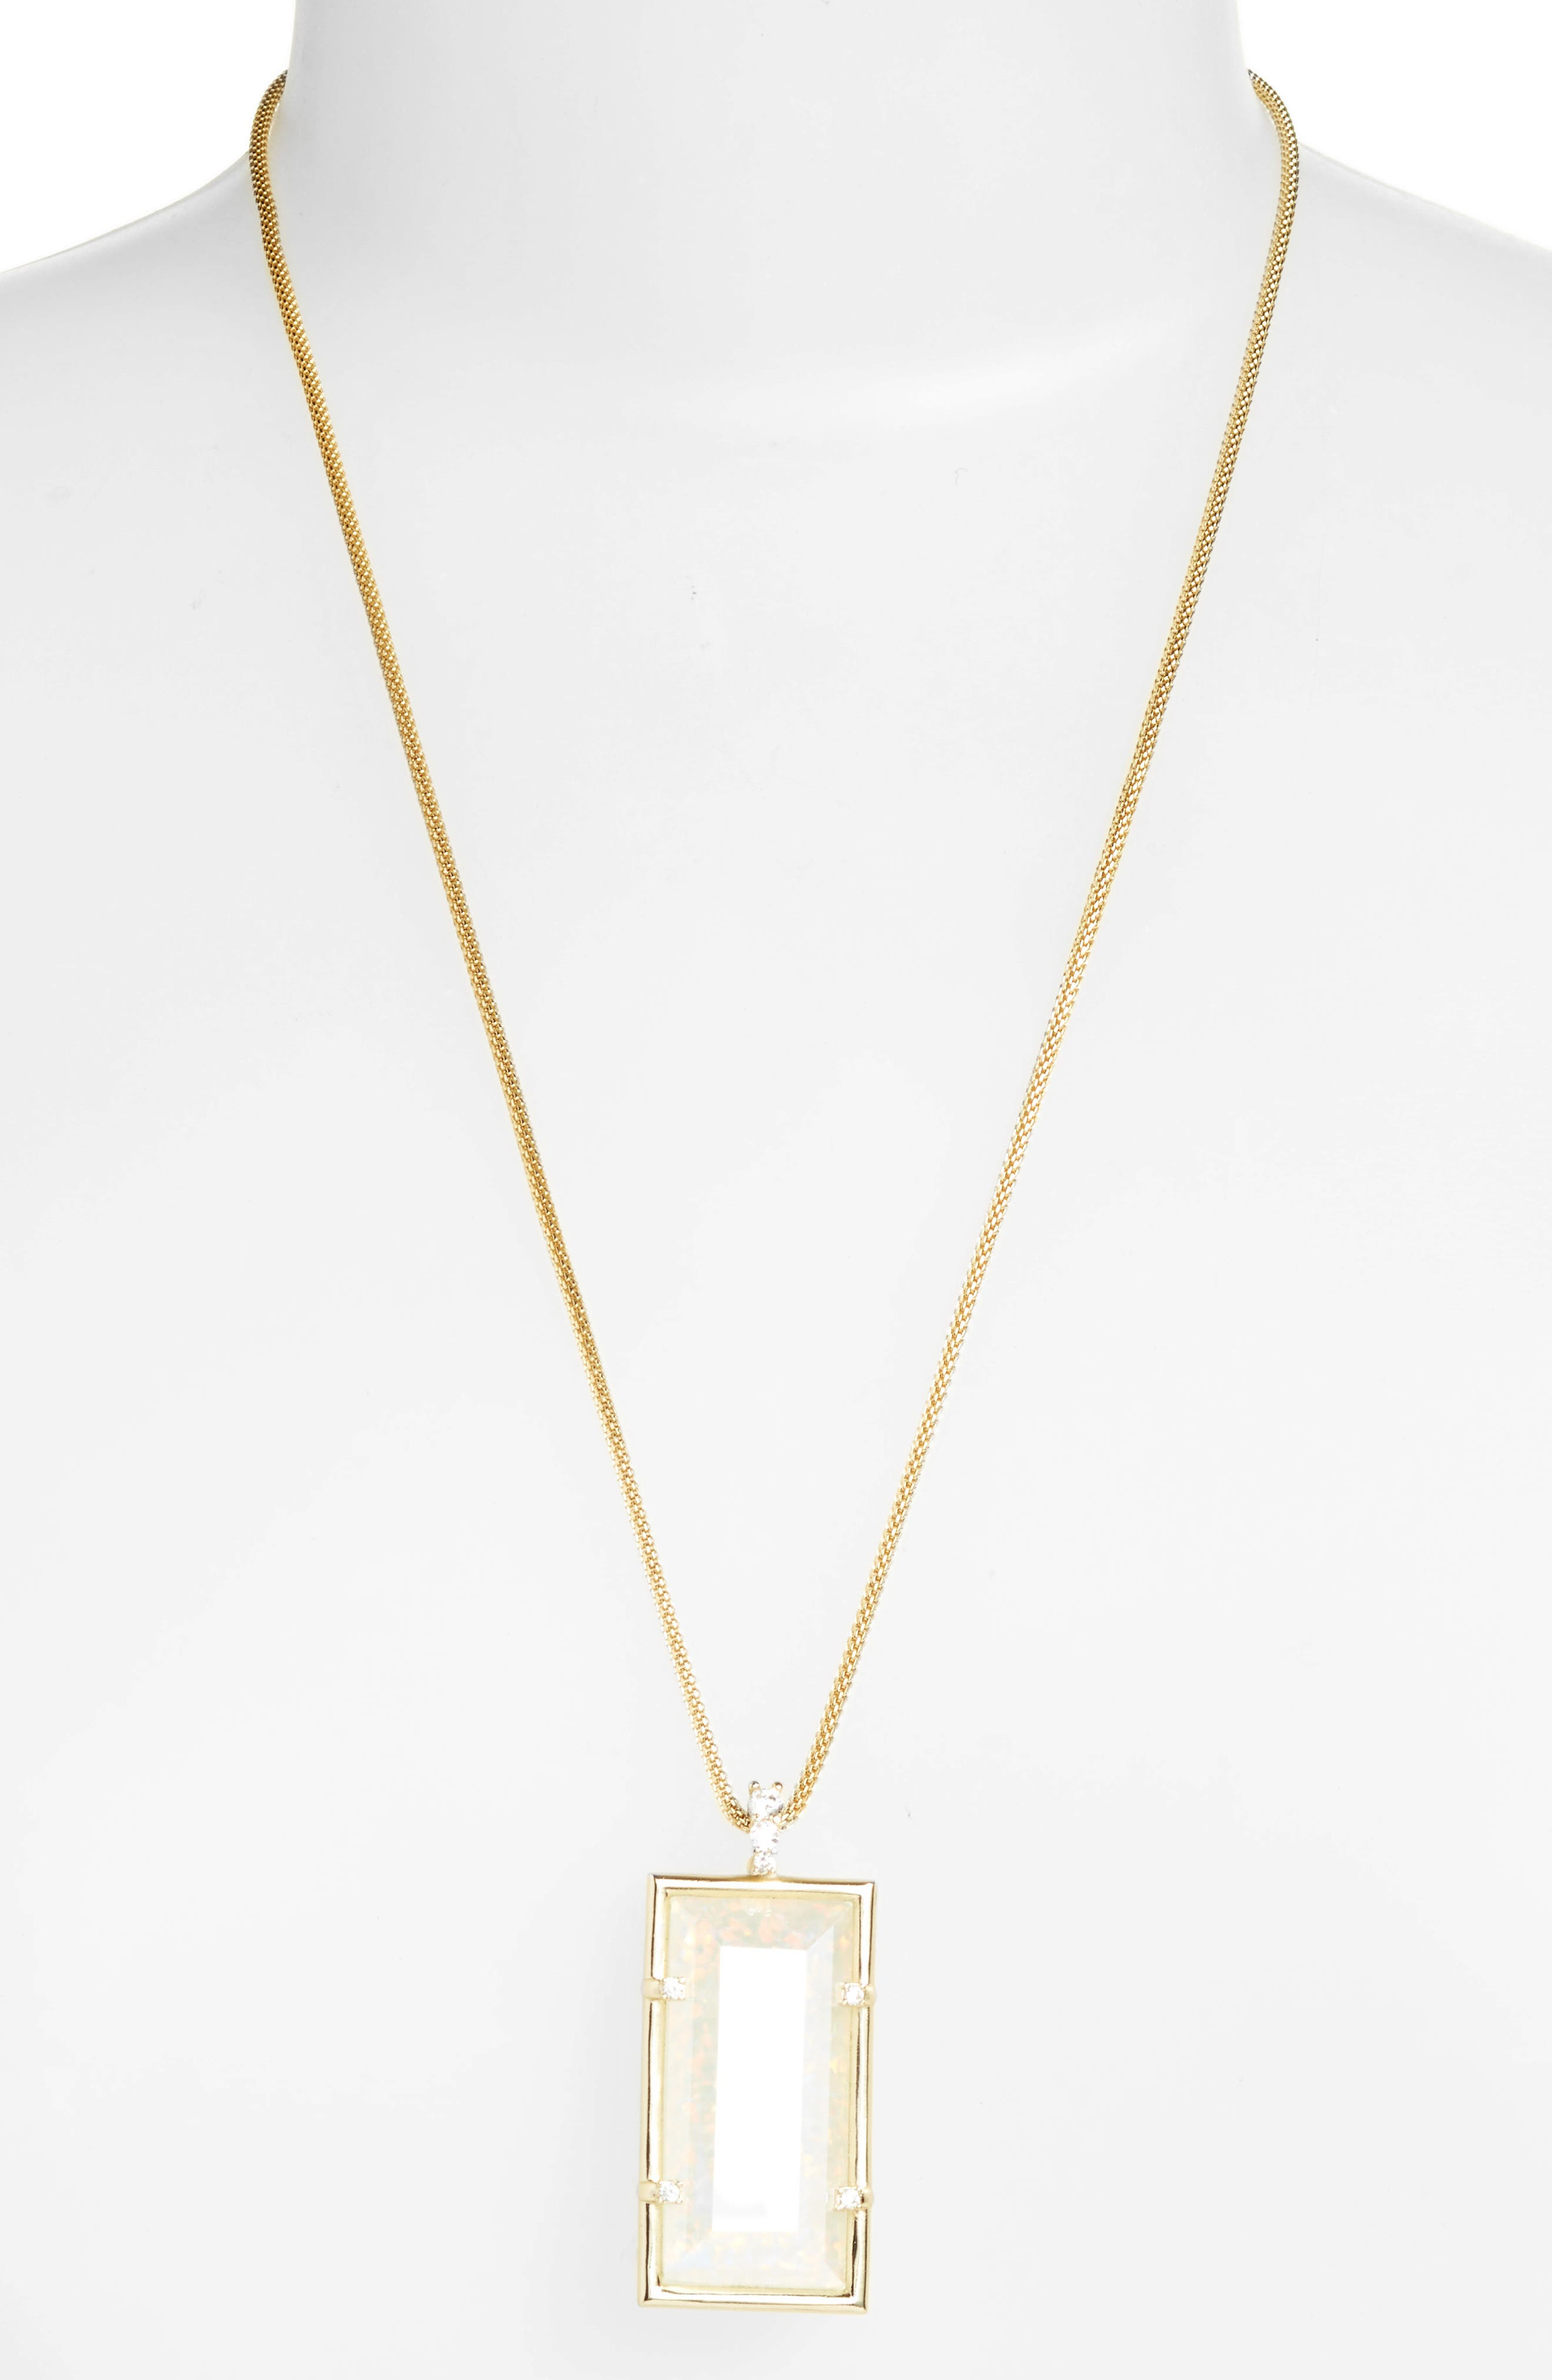 Kendra Scott Edith White Opal Pendant Necklace